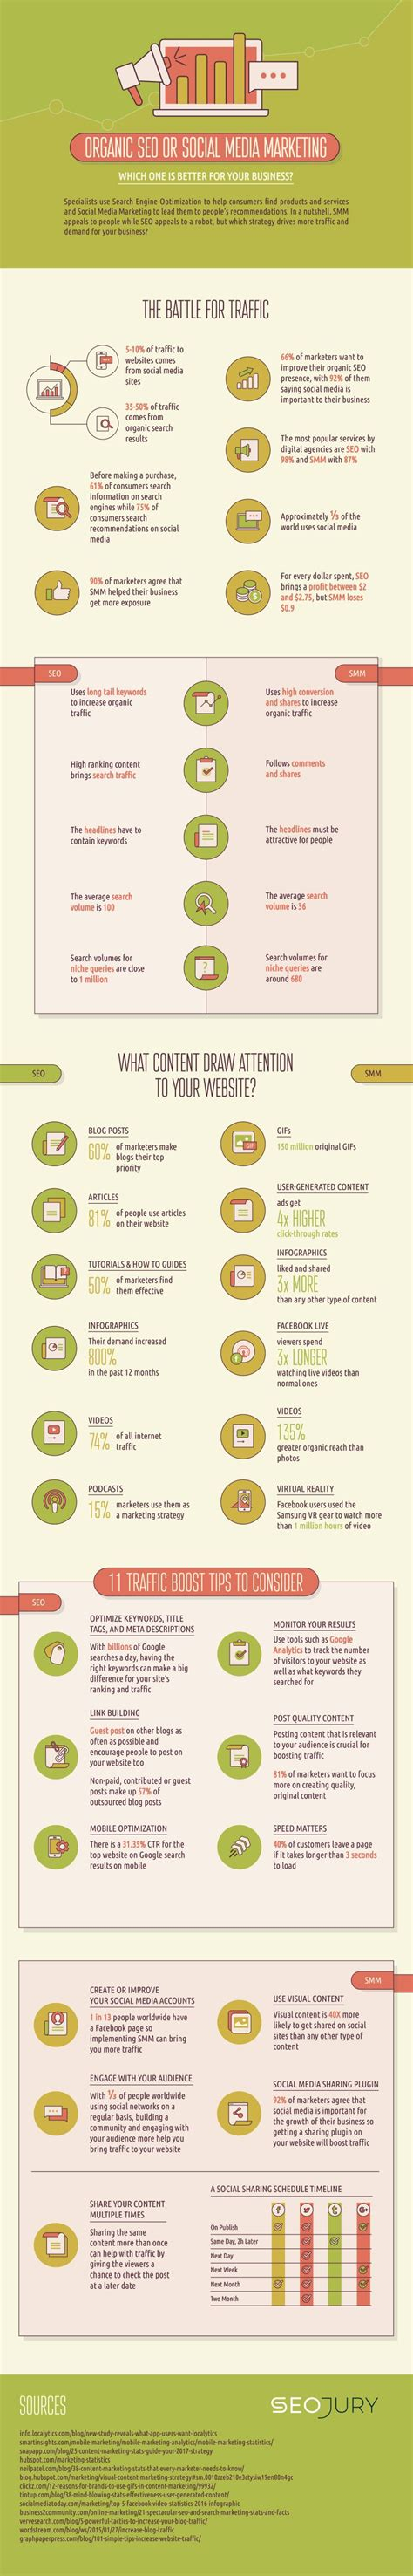 Seo Marketing Company 1 11 tips to boost website traffic infographic